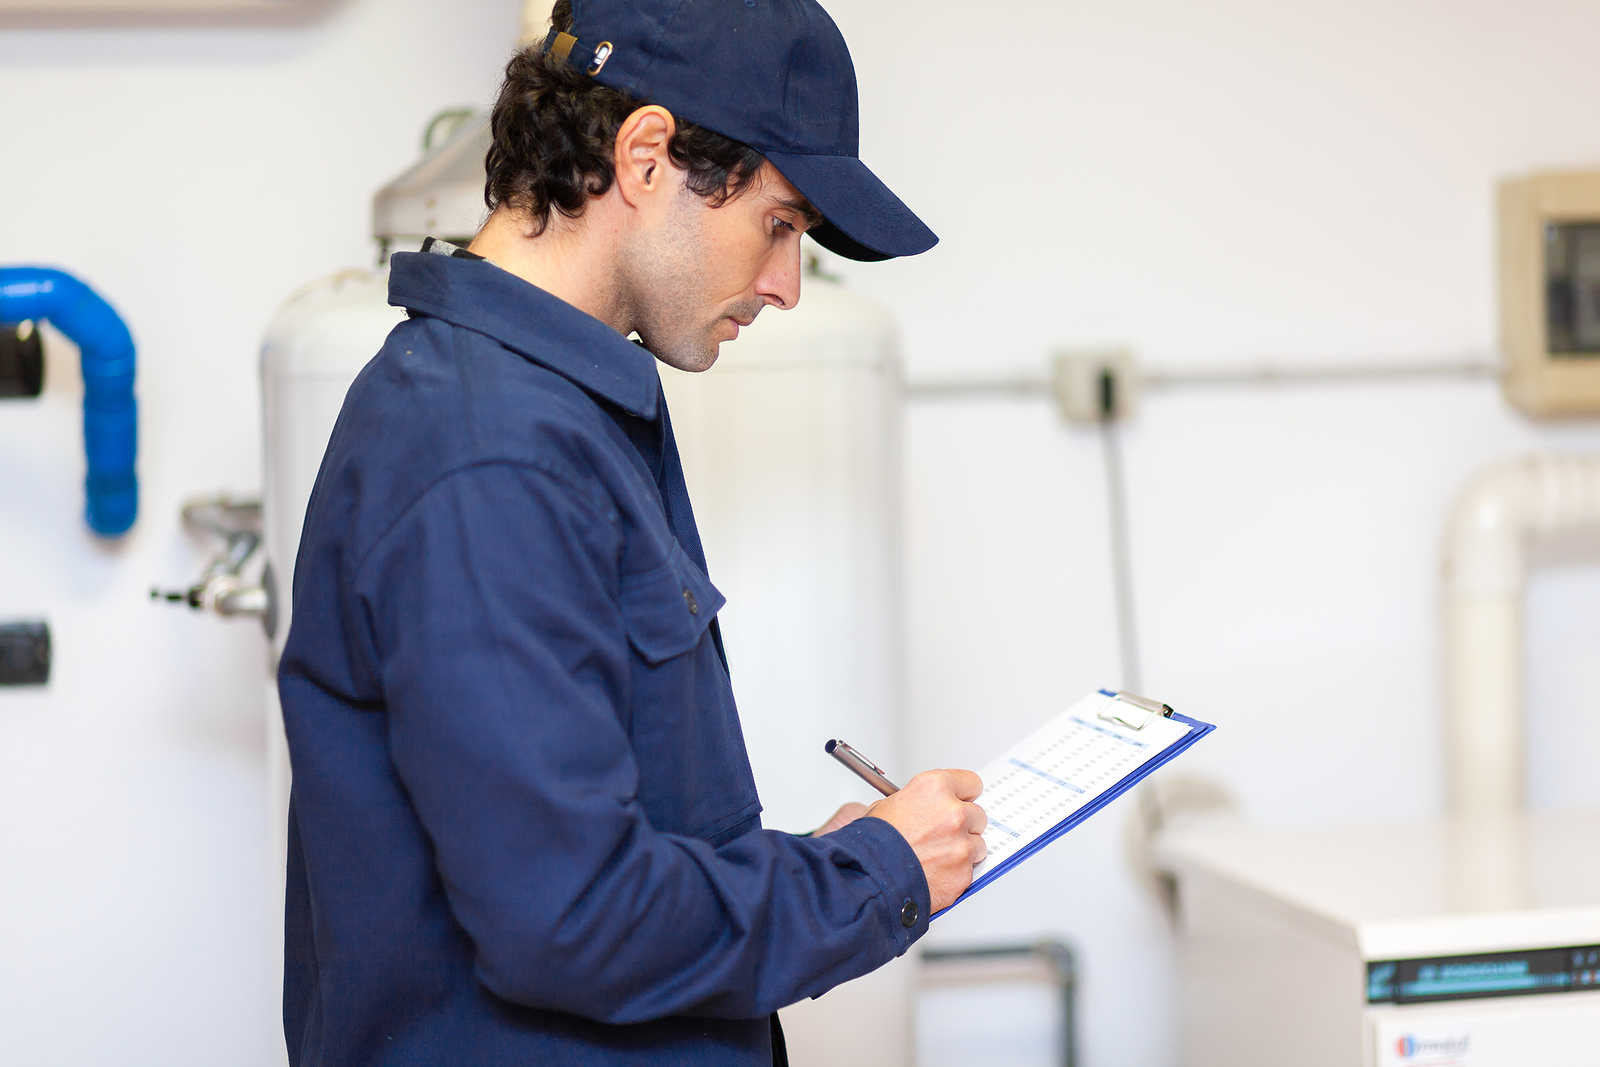 Technician servicing a hot water cylinder installation